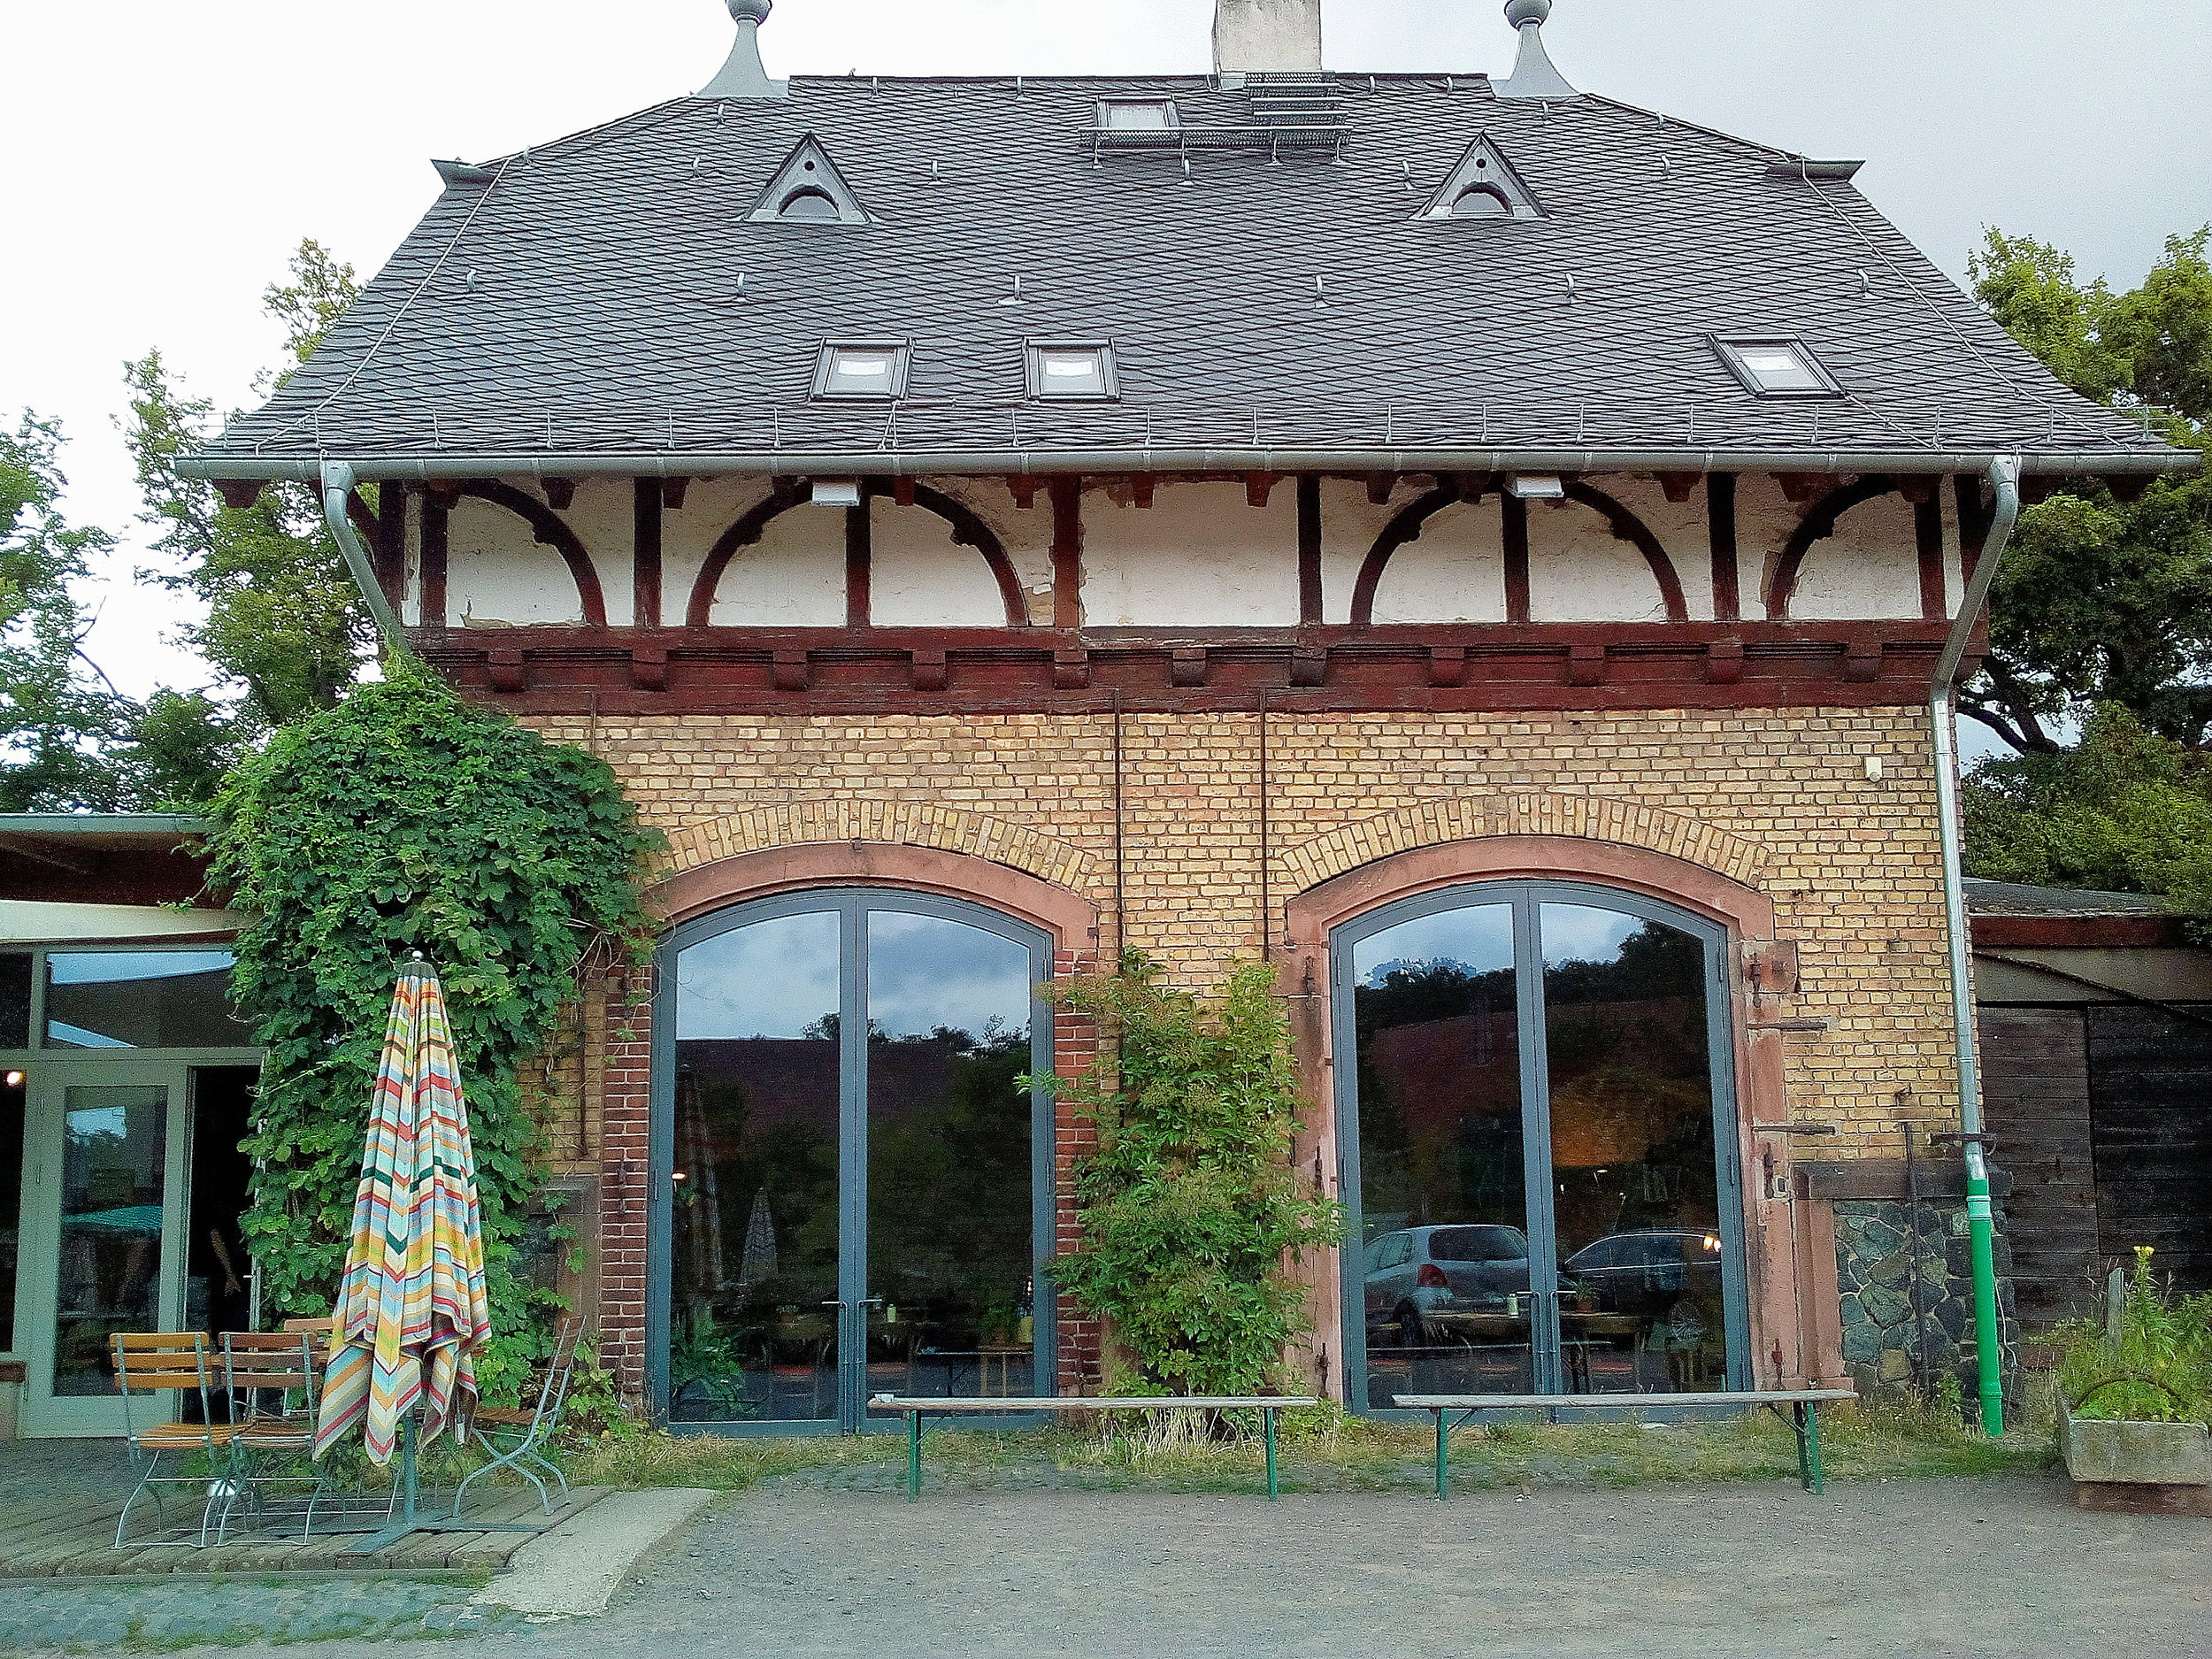 The café is in this building. It has big windows so you can enjoy the scenery even when sitting inside.